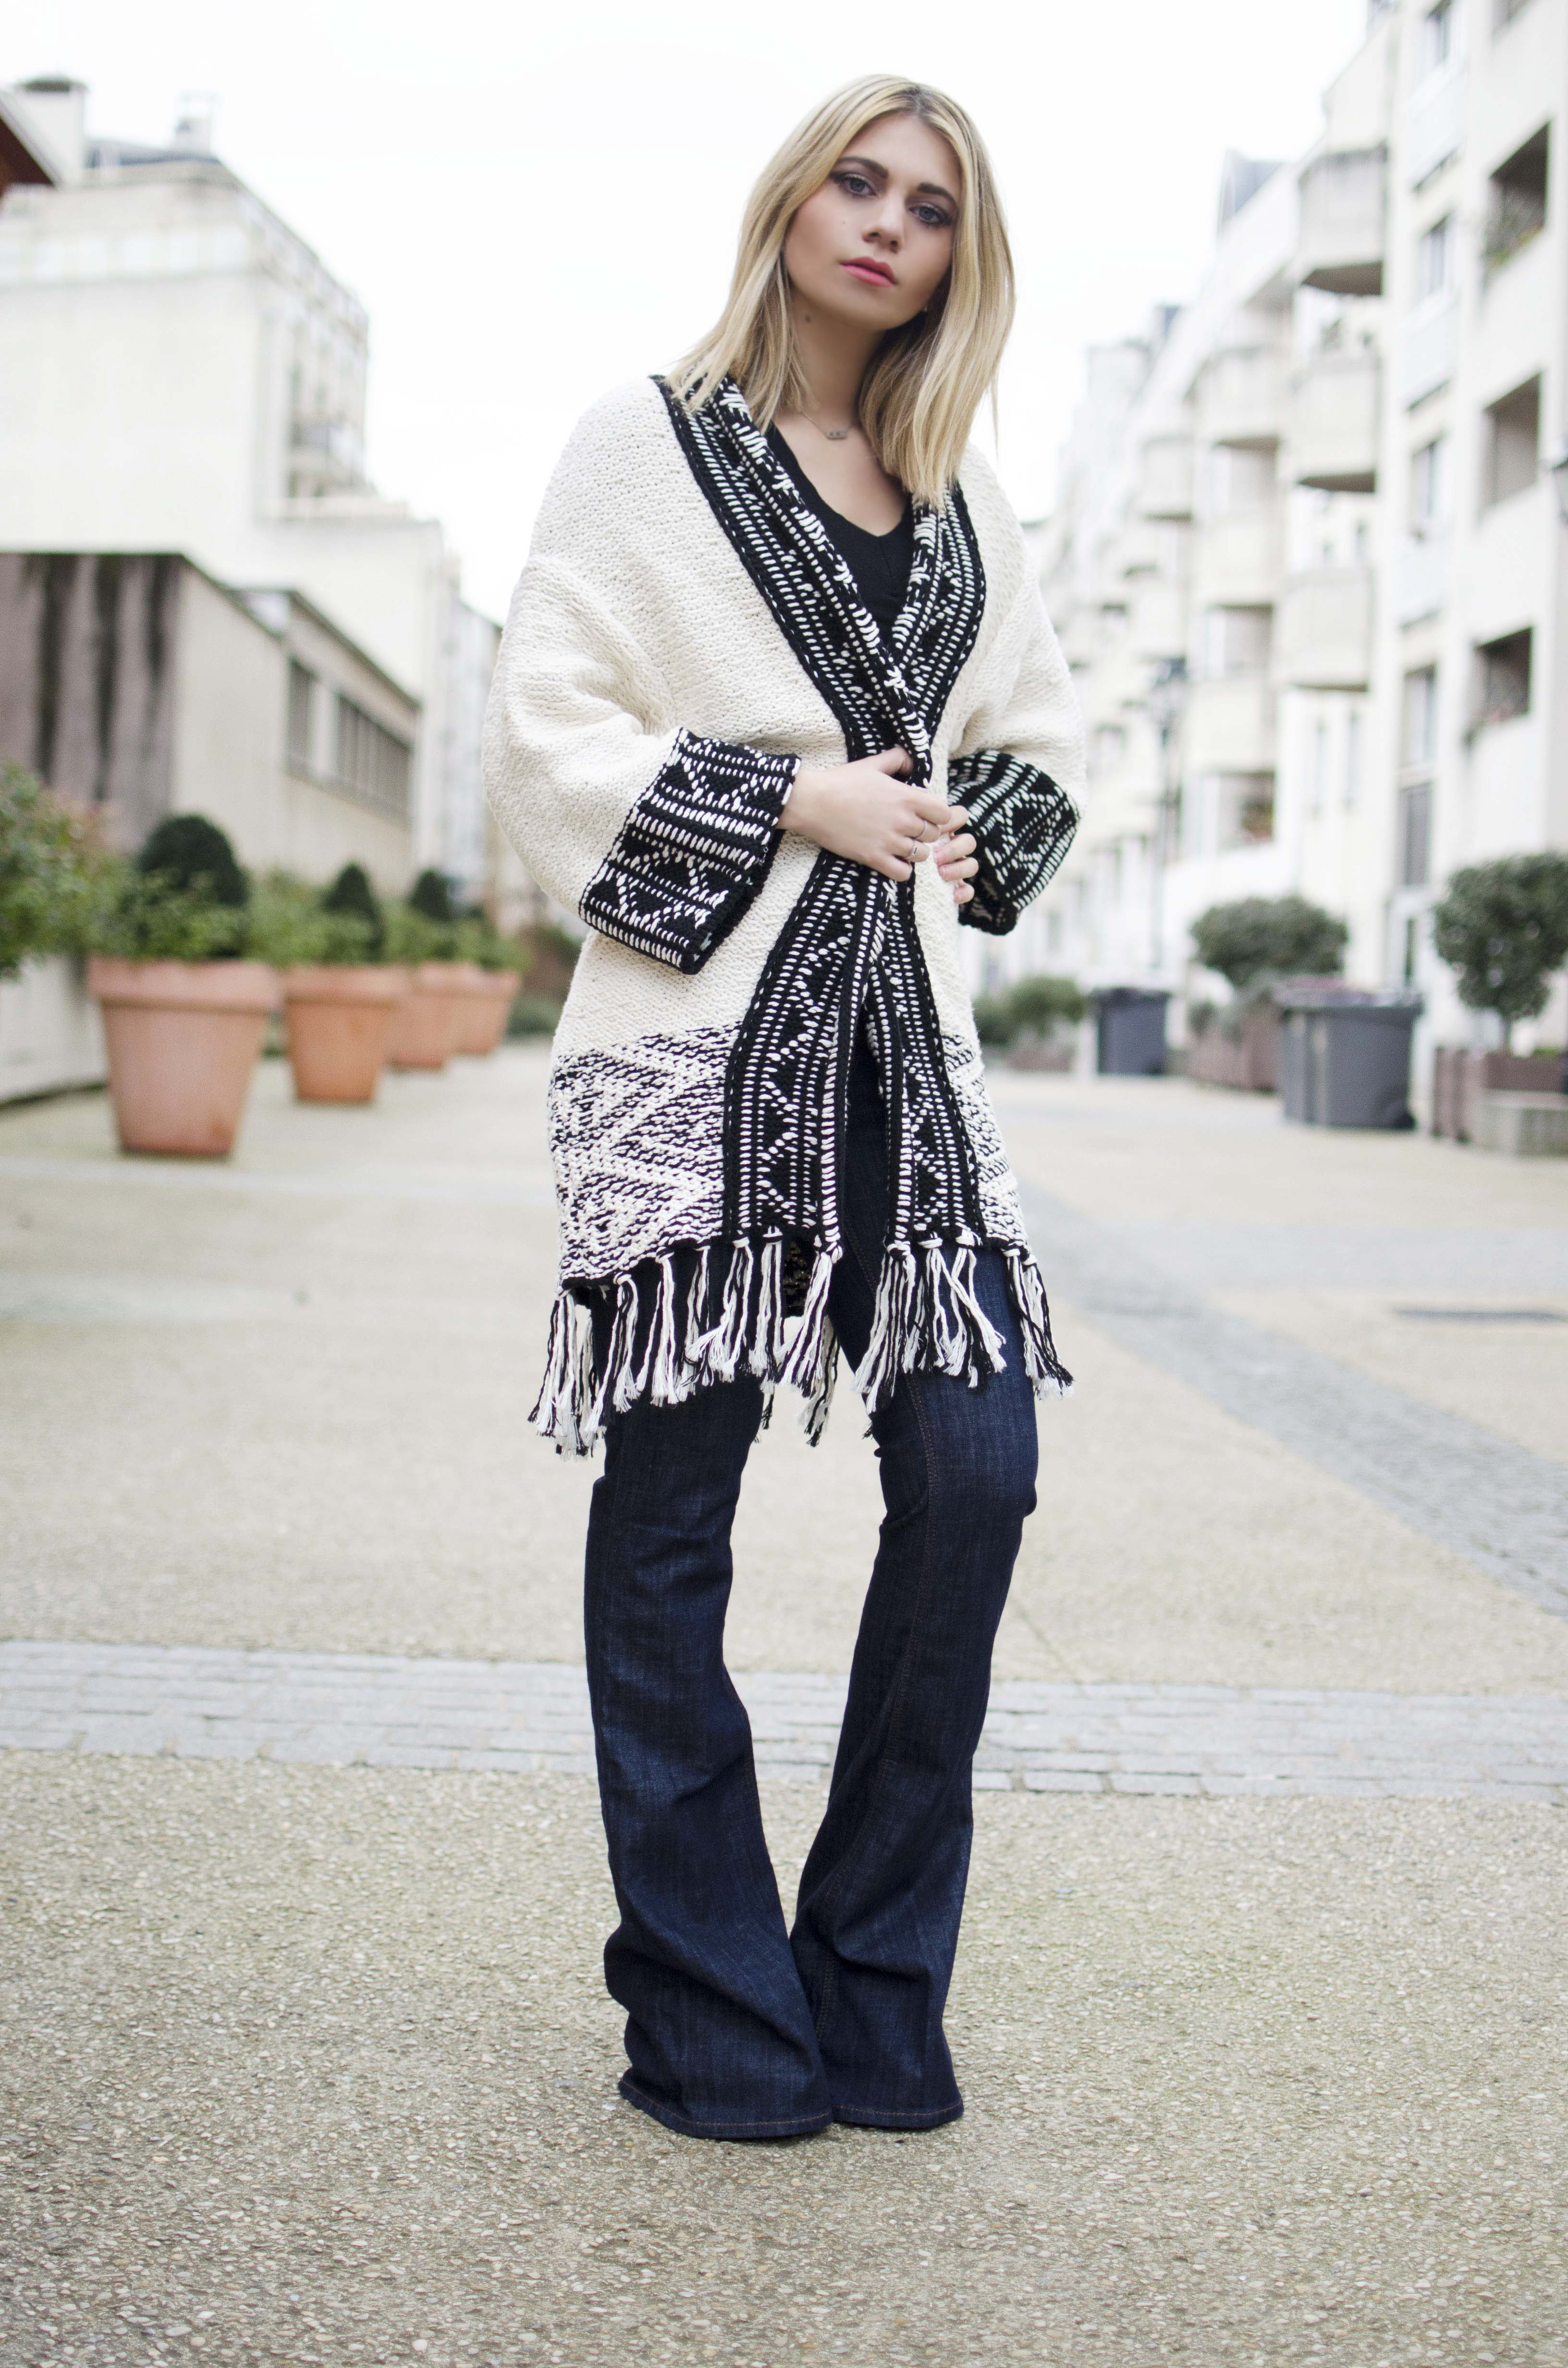 ootd blog mode zara hippie boheme